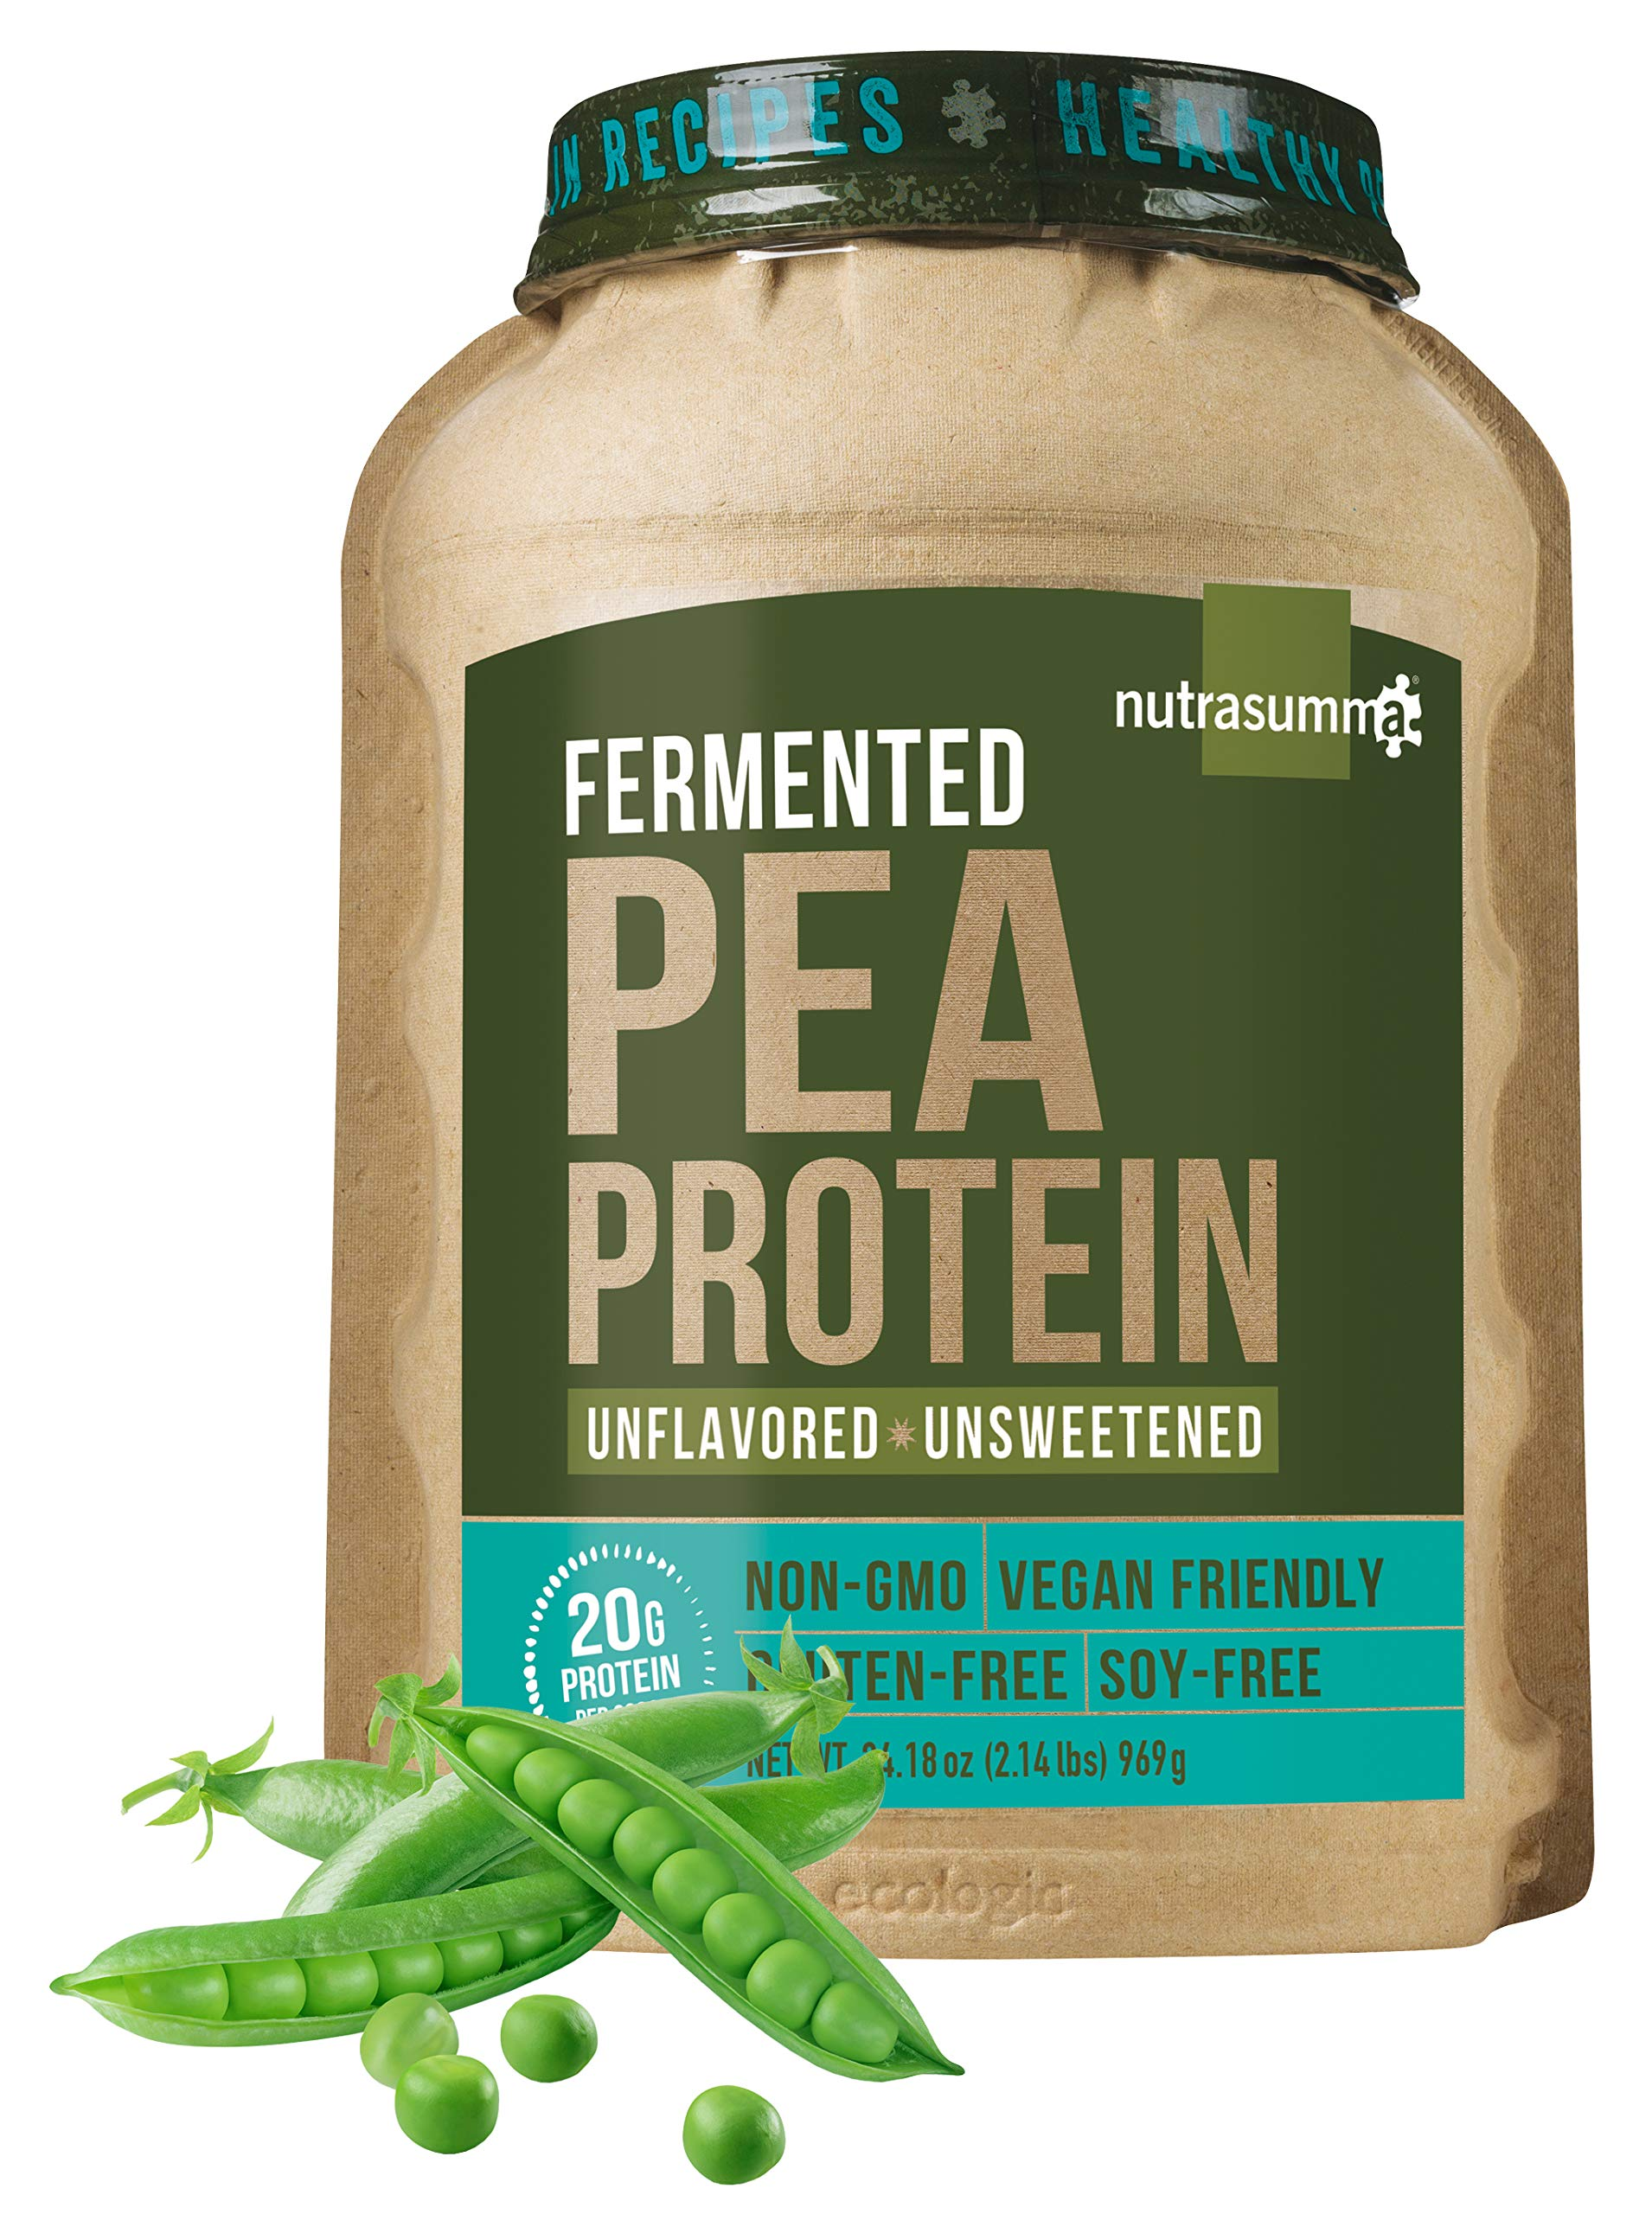 Nutrasumma Fermented Pea Protein, 2lb, Unflavored and Unsweetened